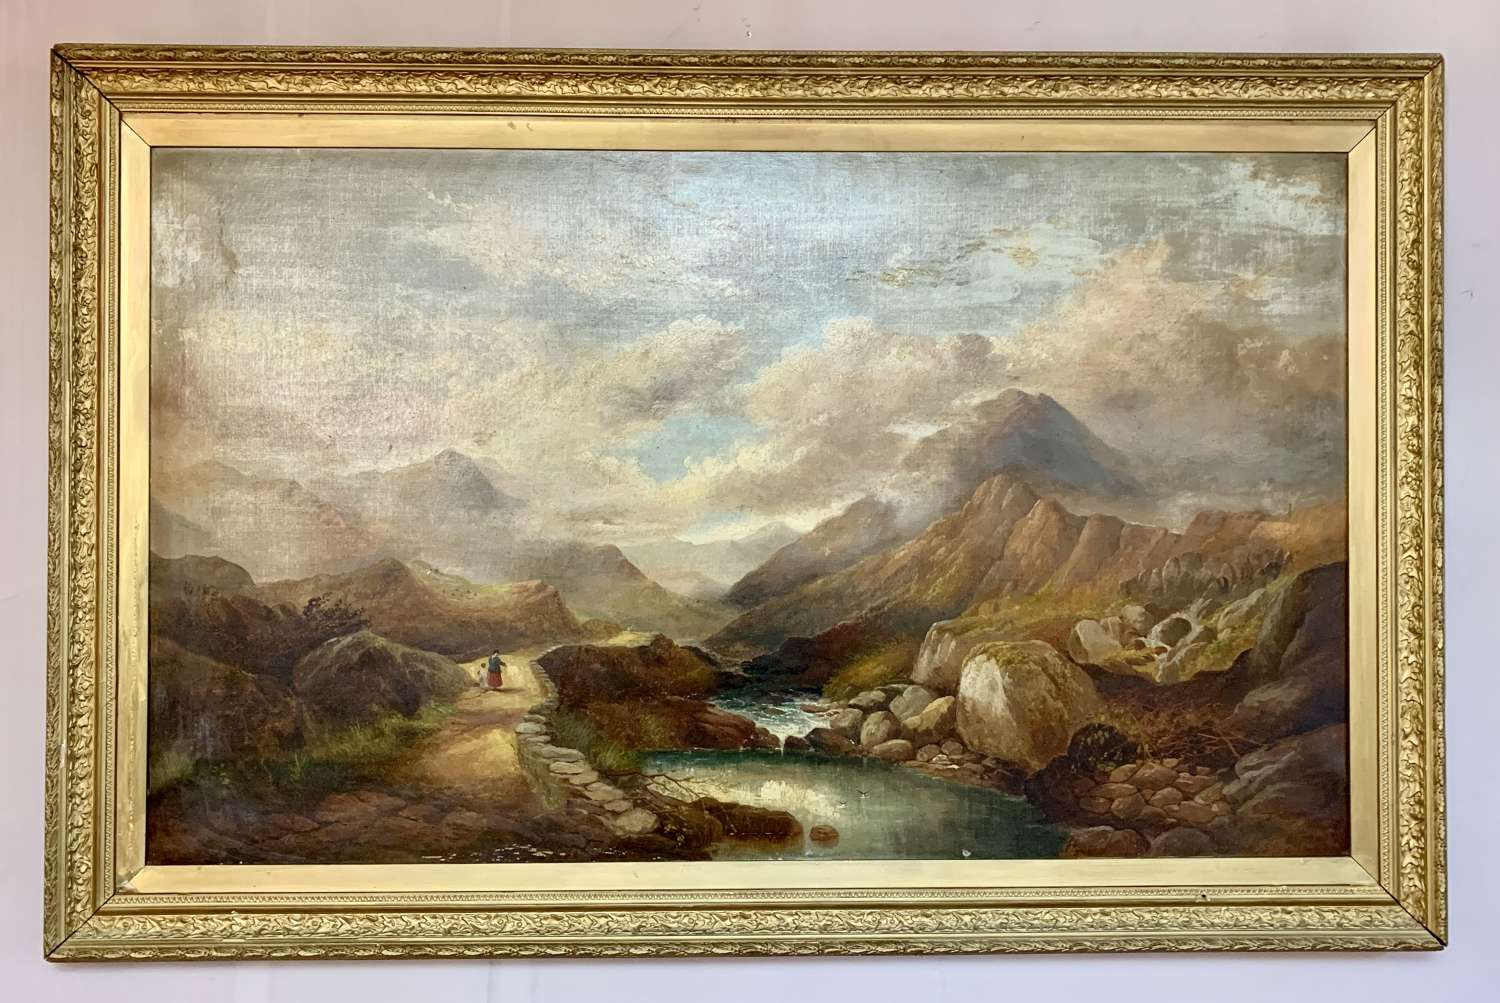 Henry Martin Pope, Llanberis Pass Snowdonia, Oil on Canvas